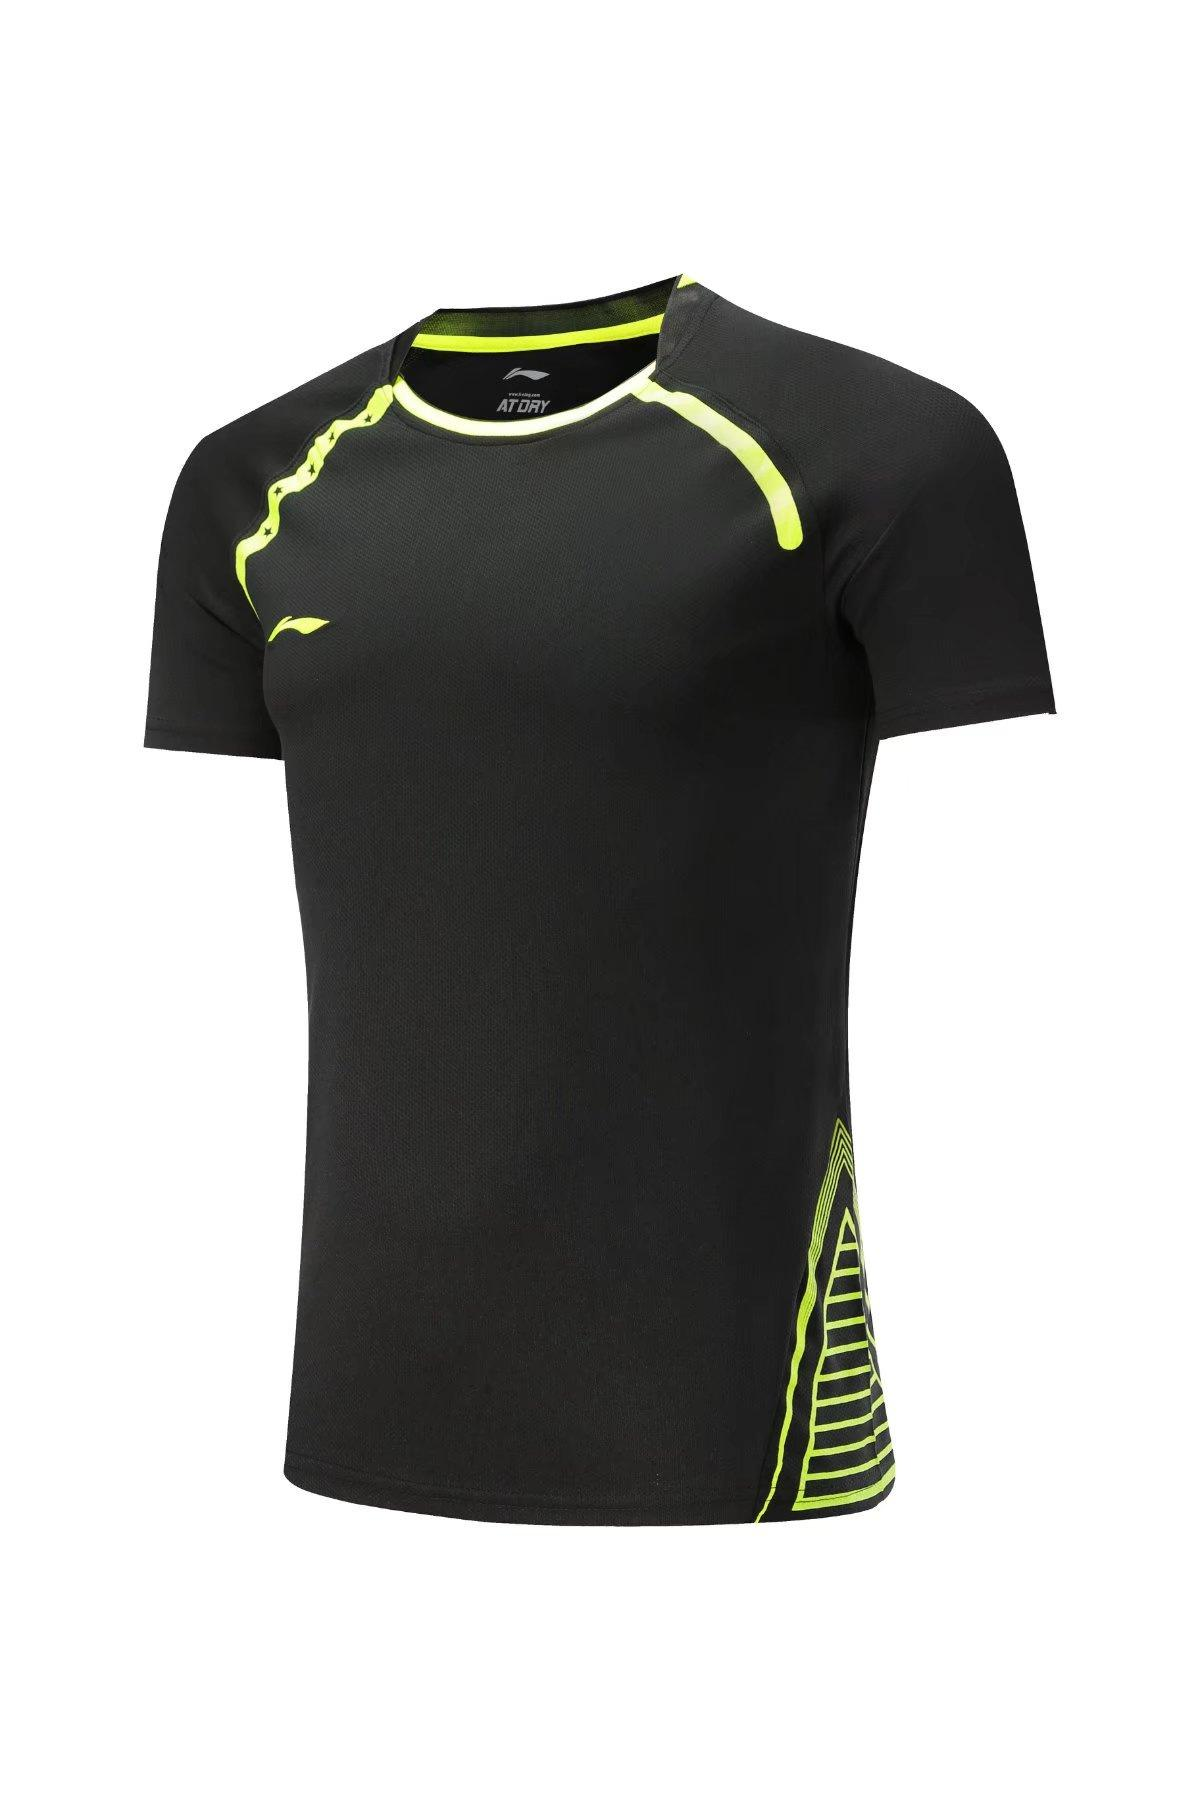 79b62c52d 2019 Li Ning Sport Gym Quick Dry Breathable Soccer Badminton Shirt Jerseys